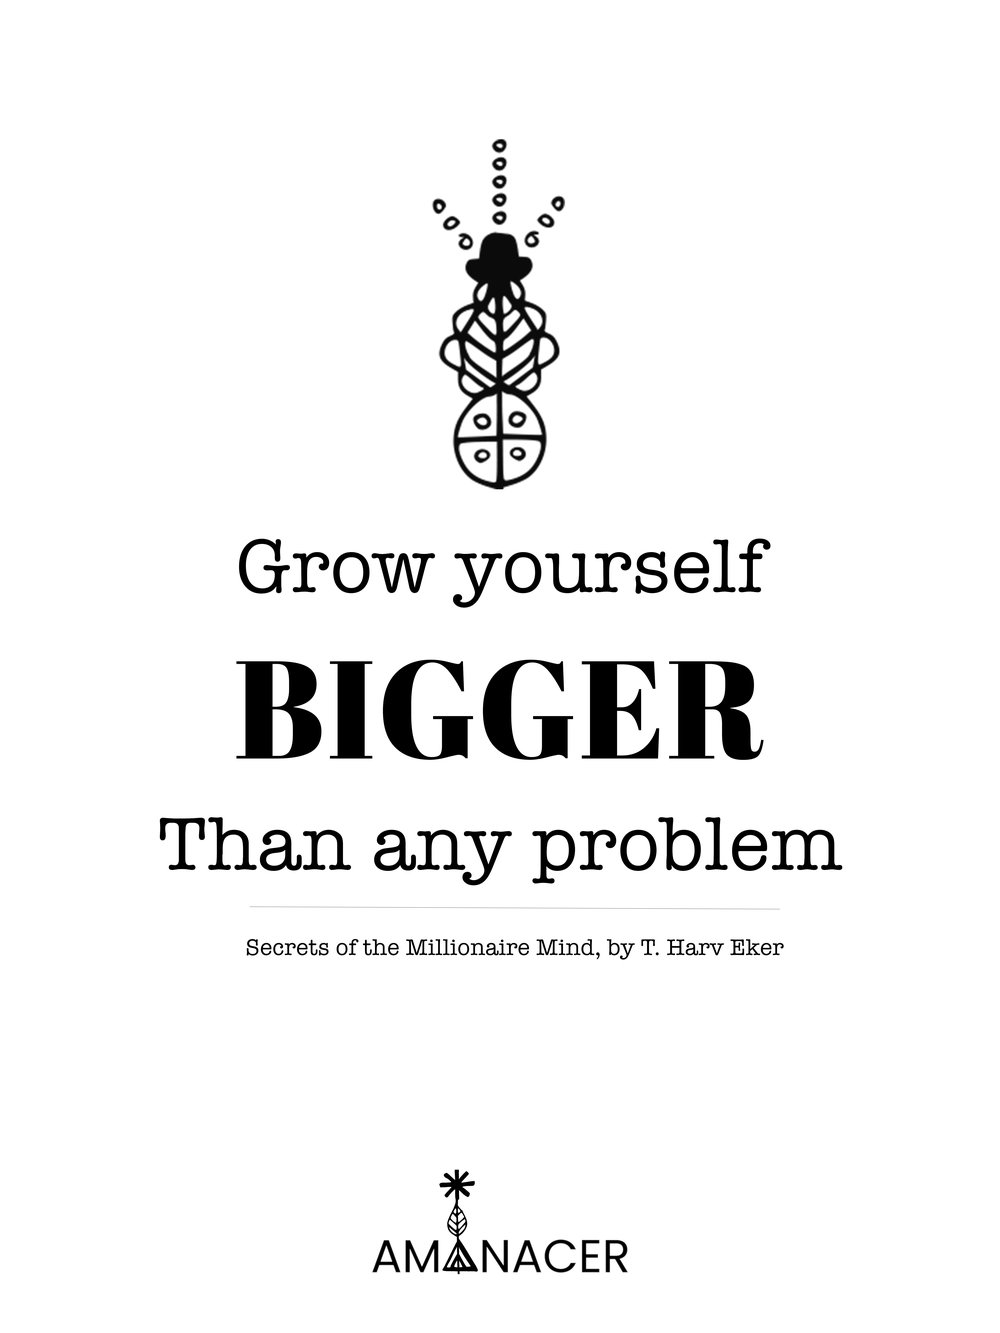 Grow Yourself Office Poster_Amanacer 18x24.jpg